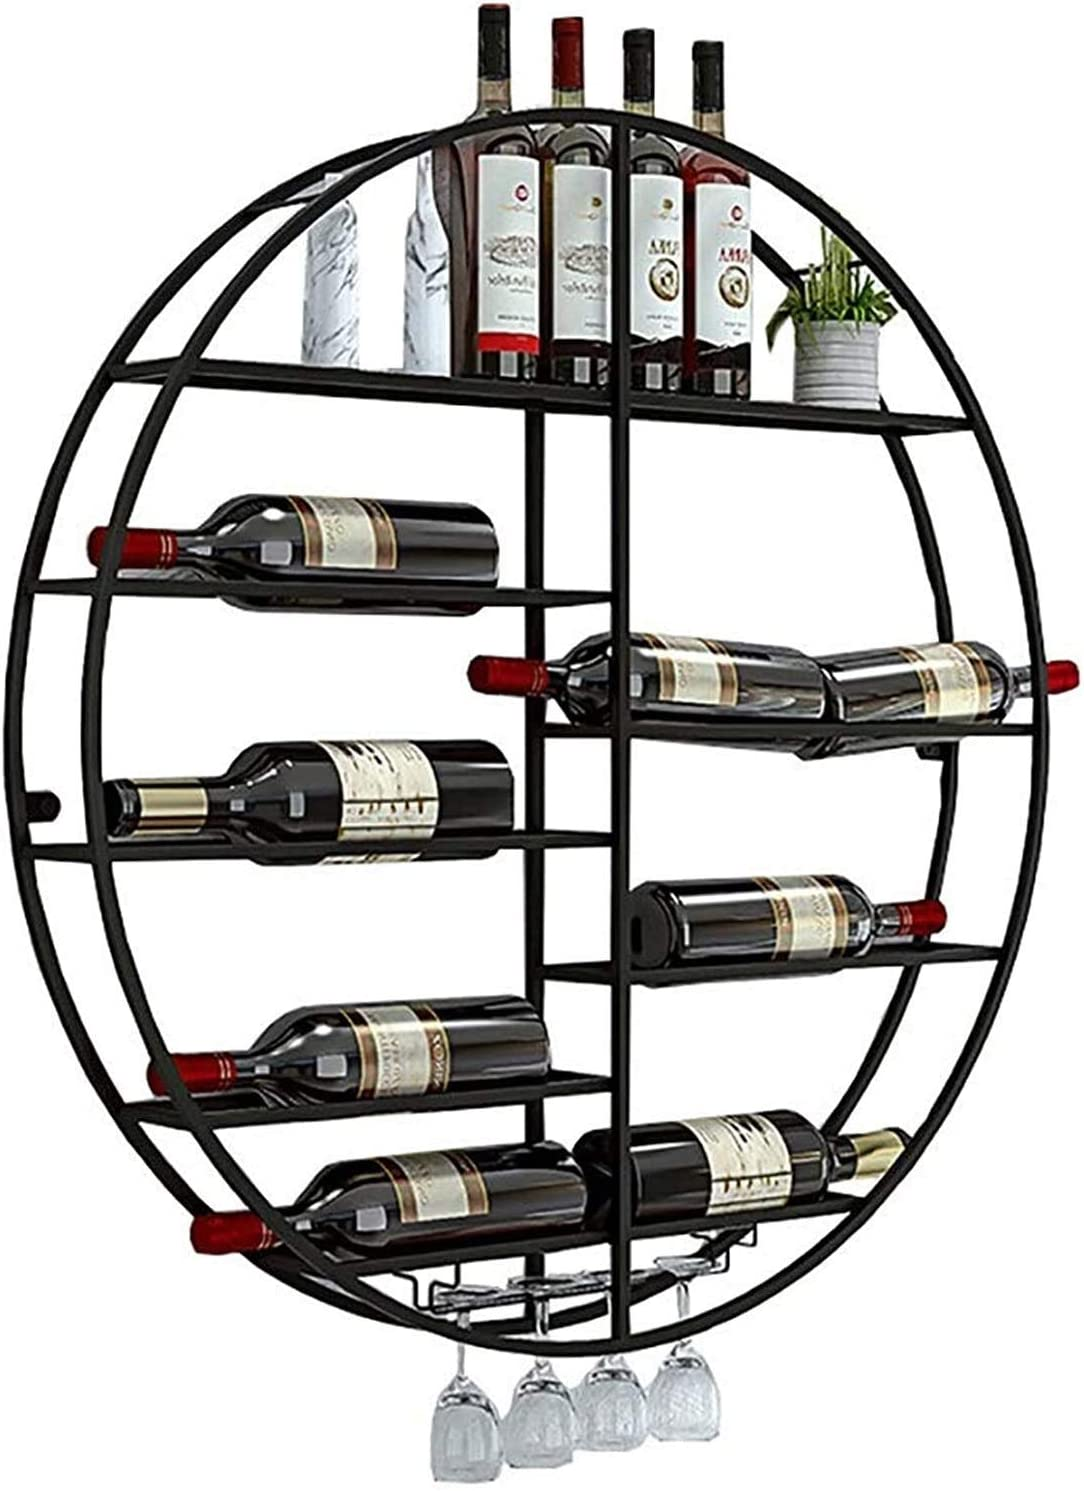 Wine Rack Ceiling Max 51% OFF Hanging Wall Our shop OFFers the best service Holder Bottle